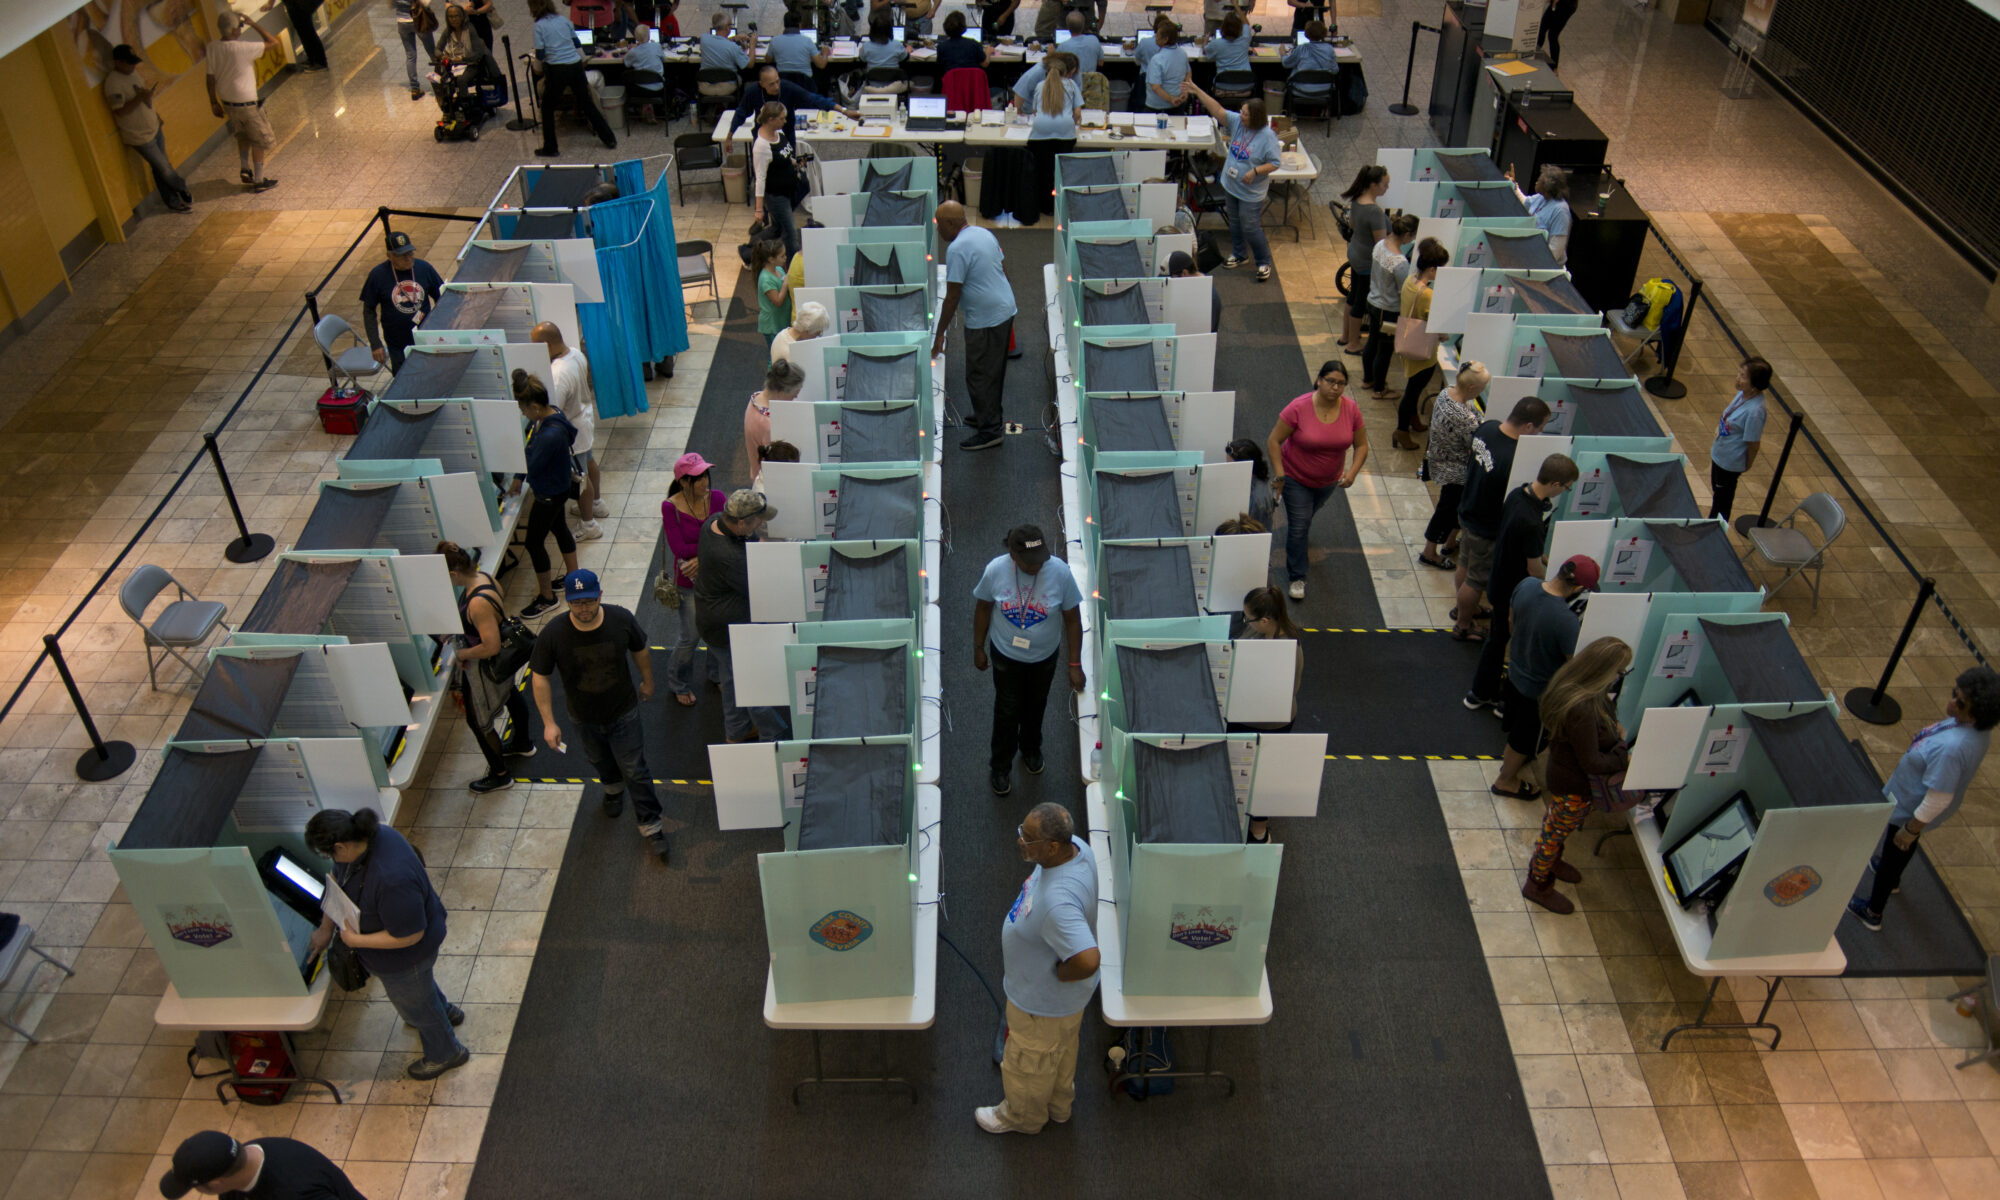 Overhead view looking down on voting stations